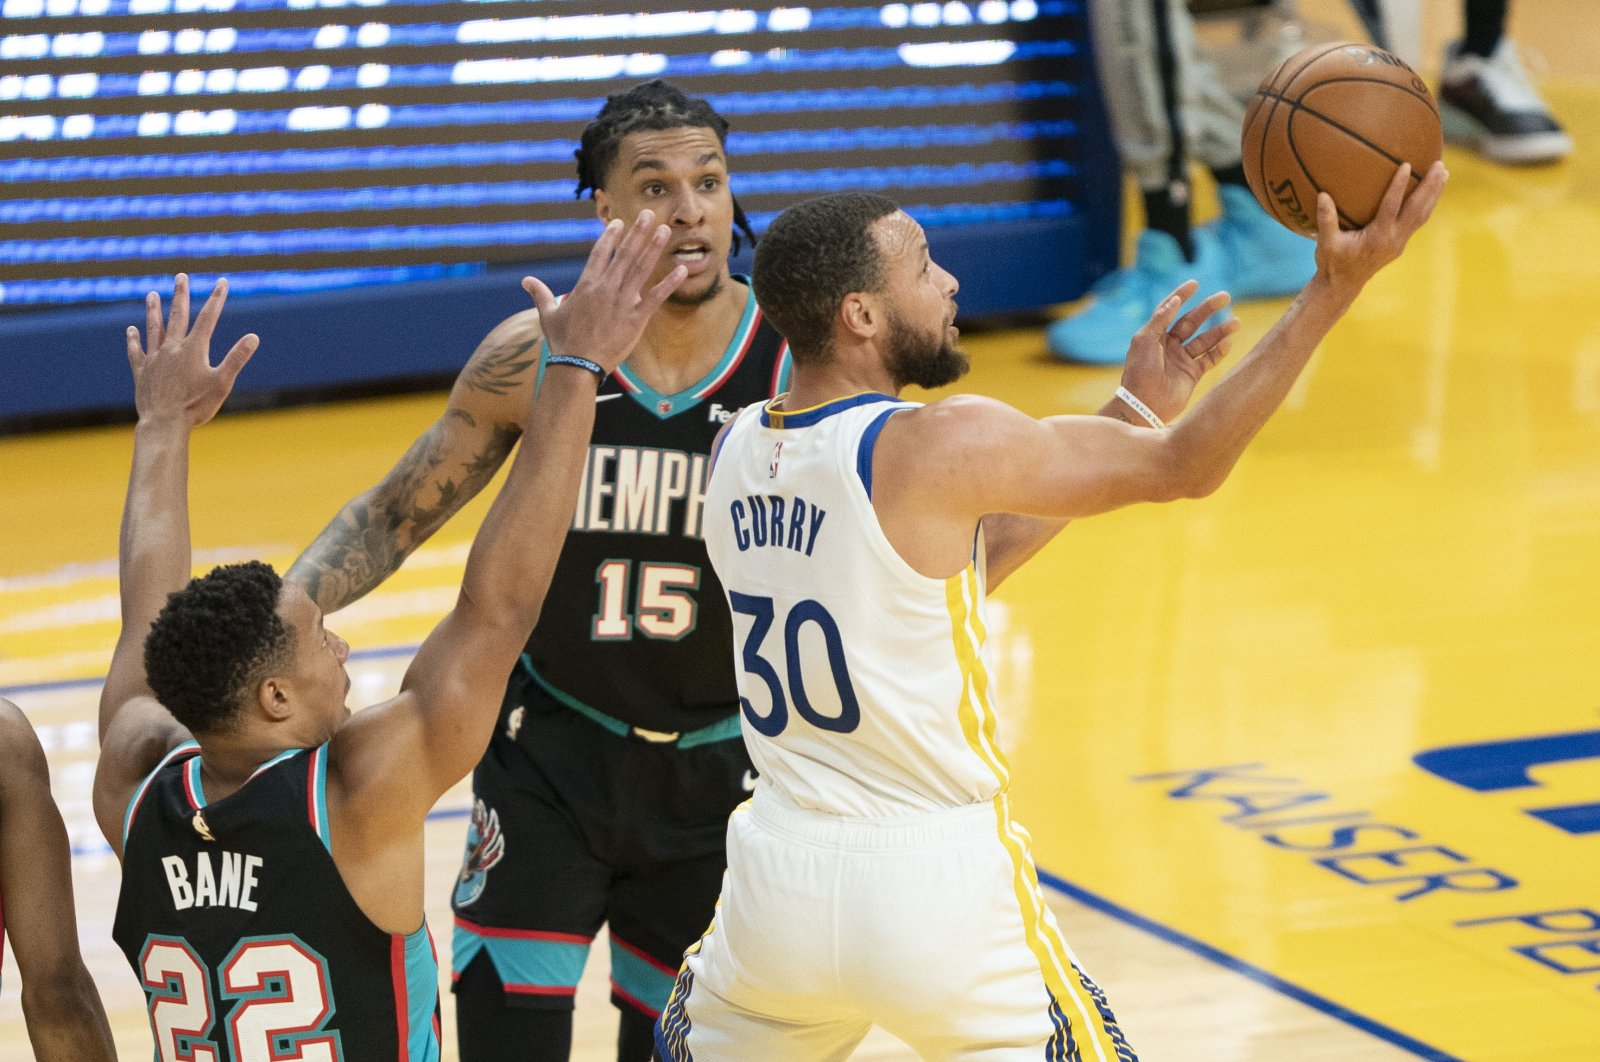 Golden State Warriors guard Stephen Curry (R) shoots against Memphis Grizzlies guard Desmond Bane (L) and forward Brandon Clarke (C) during an NBA match at Chase Center, San Francisco, California, U.S., May 16, 2021. (AFP Photo)